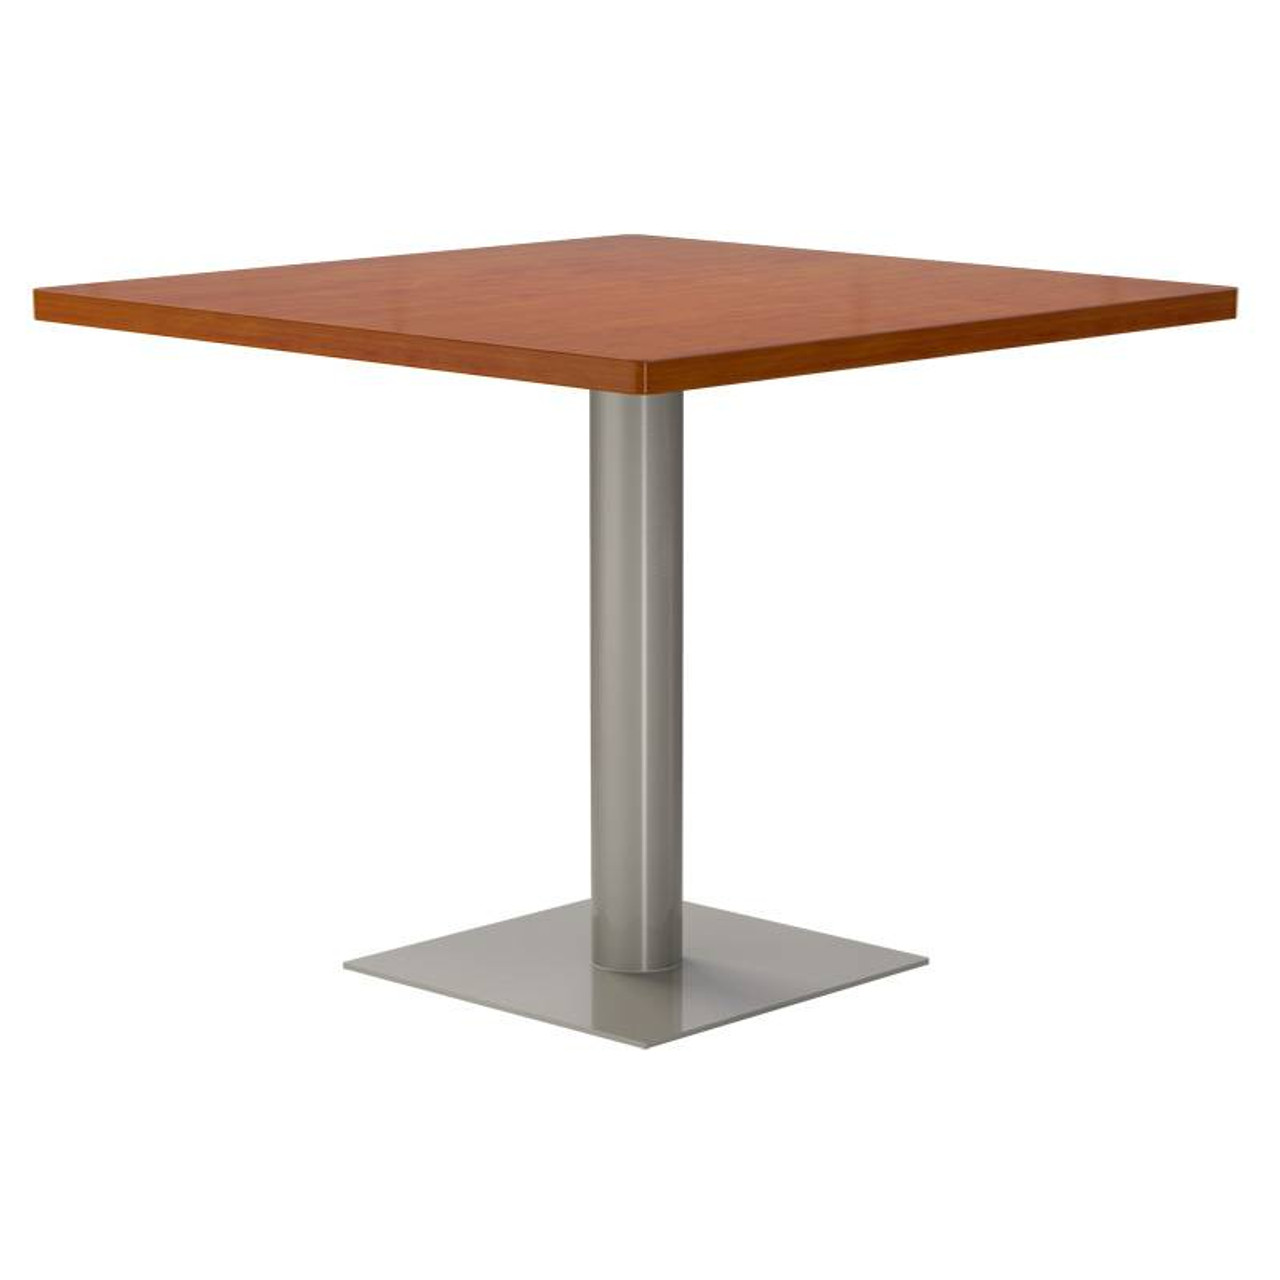 Picture of: Low Profile Square Pedestal Table Base 187x